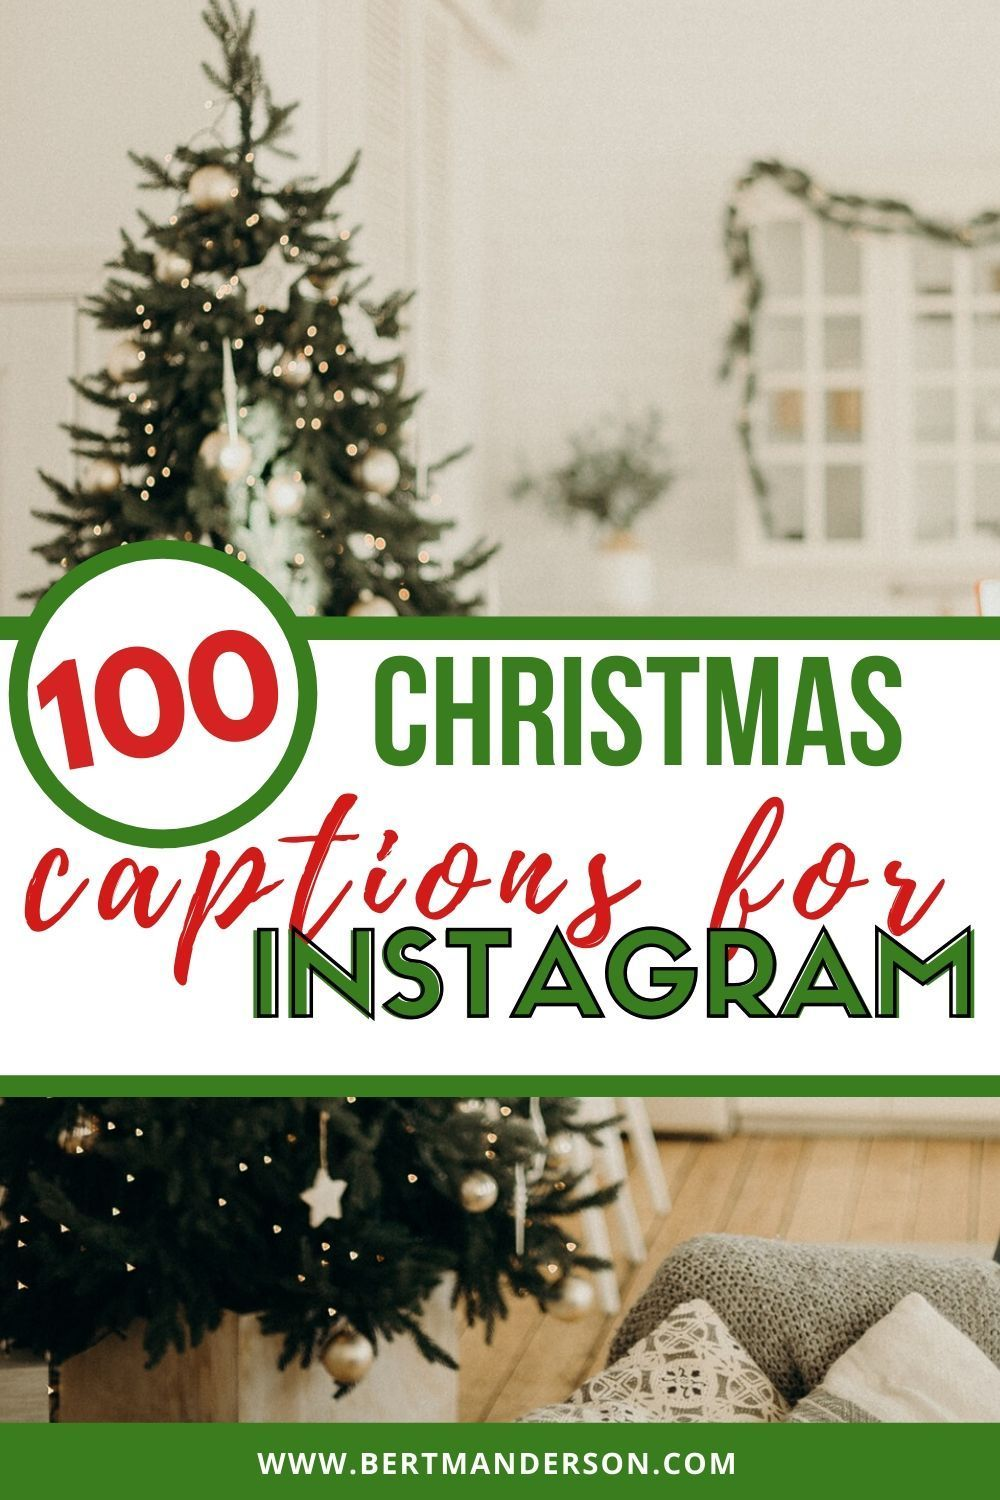 Holiday Captions Holiday 100 Christmas Captions For Instagram That You Absolutely Need In 2020 Christmas Captions For Instagram Christmas Captions Instagram Captions